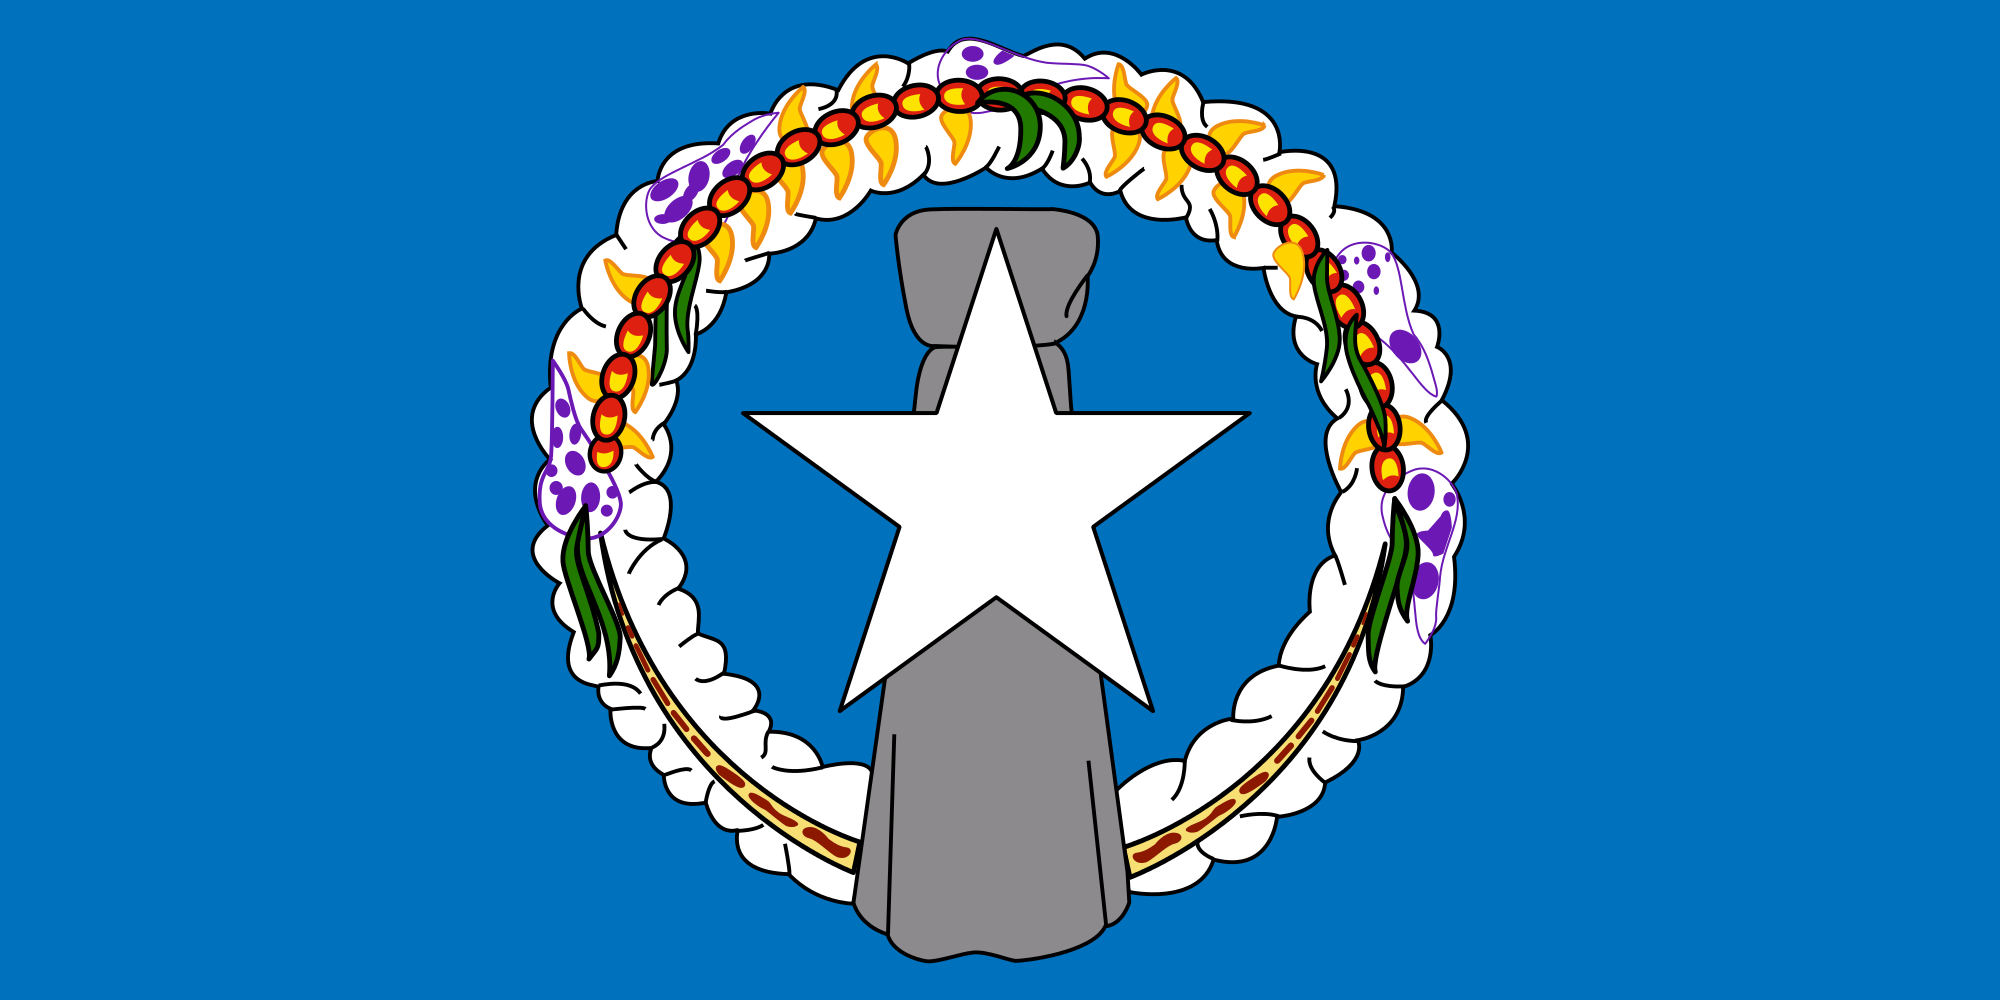 File:Flag of the Northern Mariana Islands.svg.